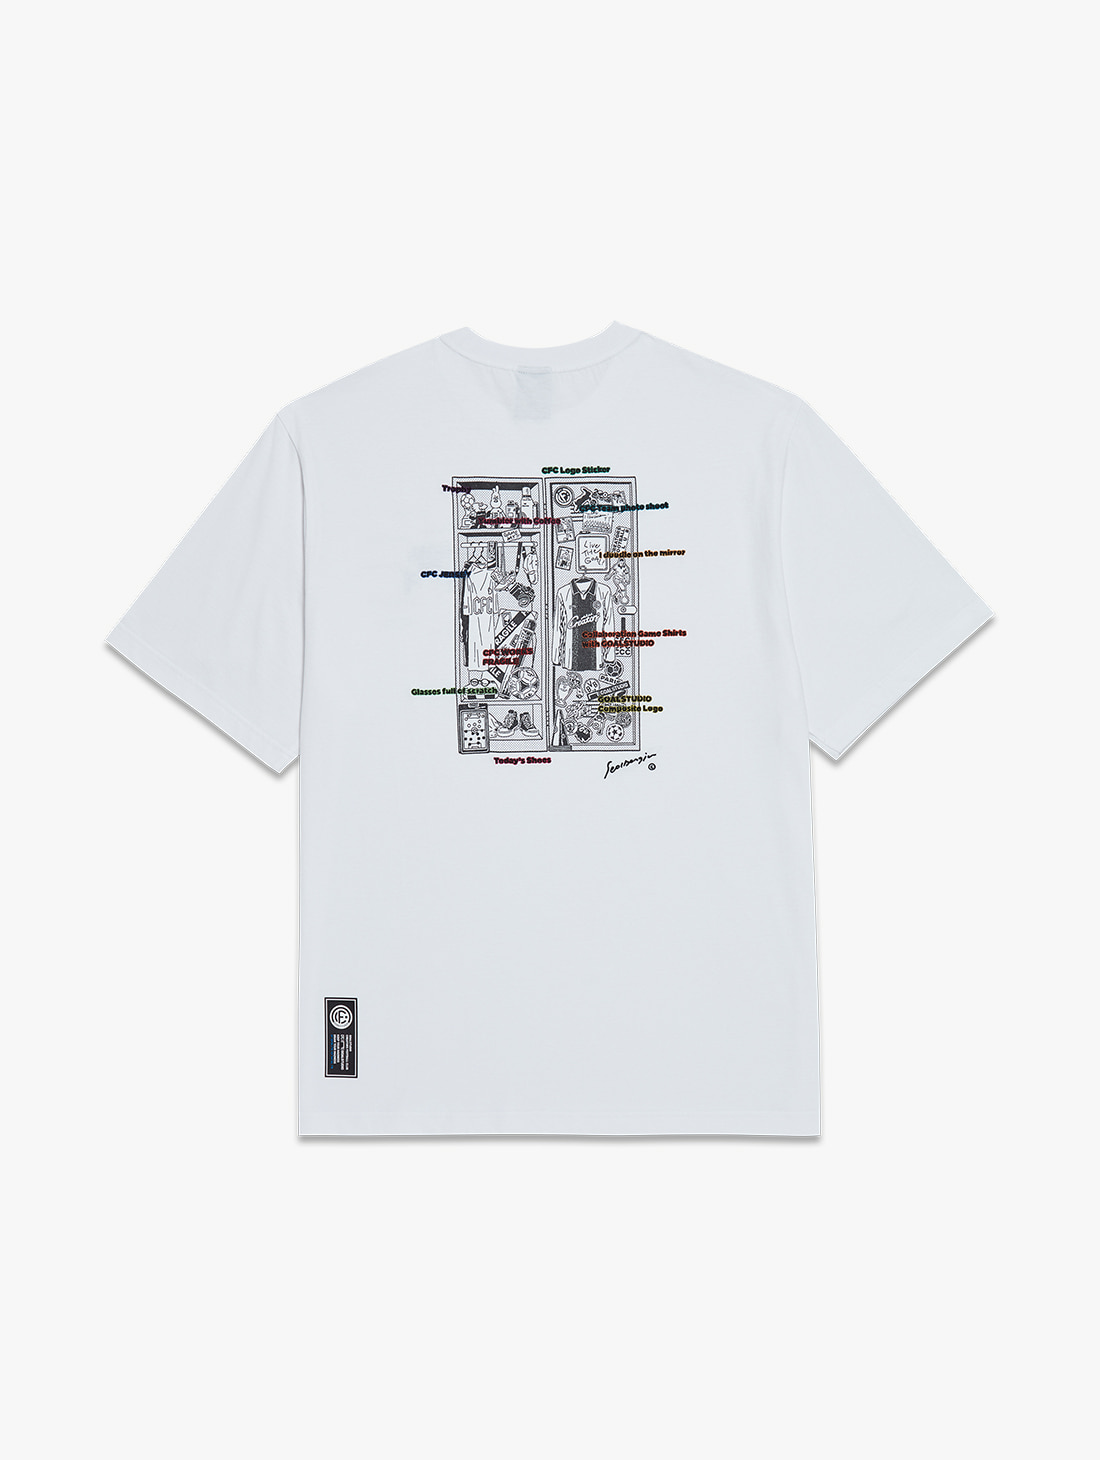 GOALSTUDIO CFC LOCKER ROOM TEE (2 Colors)